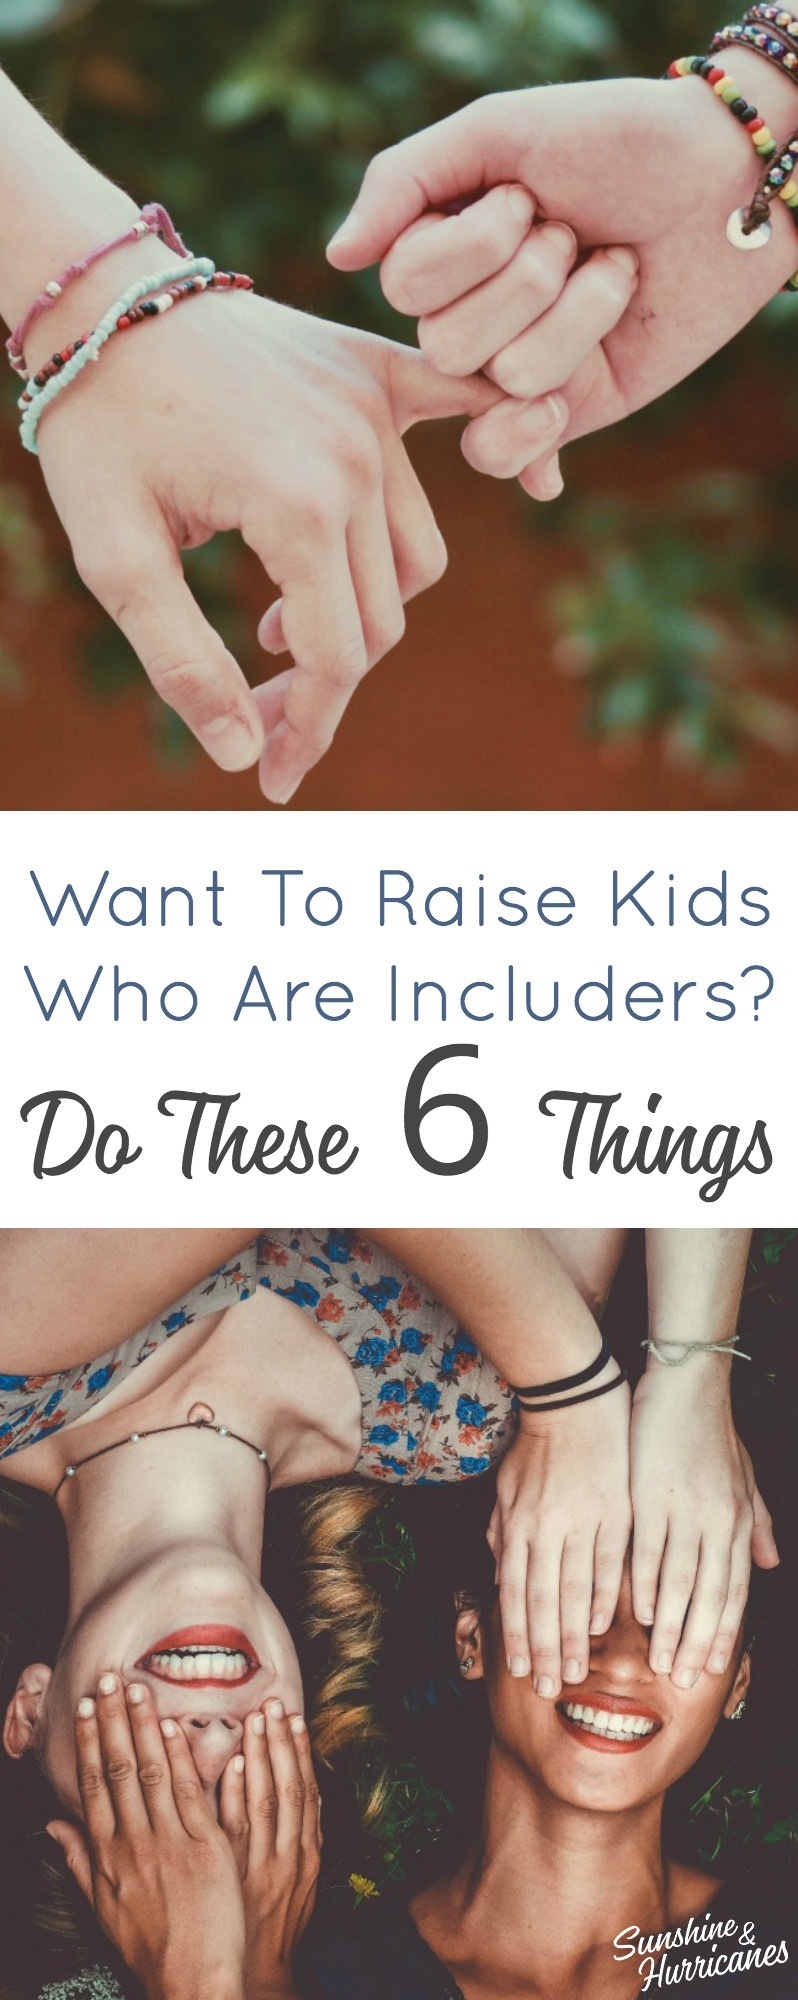 Cliques are a part of growing up, but you can raise kids and teens who reach out and include others